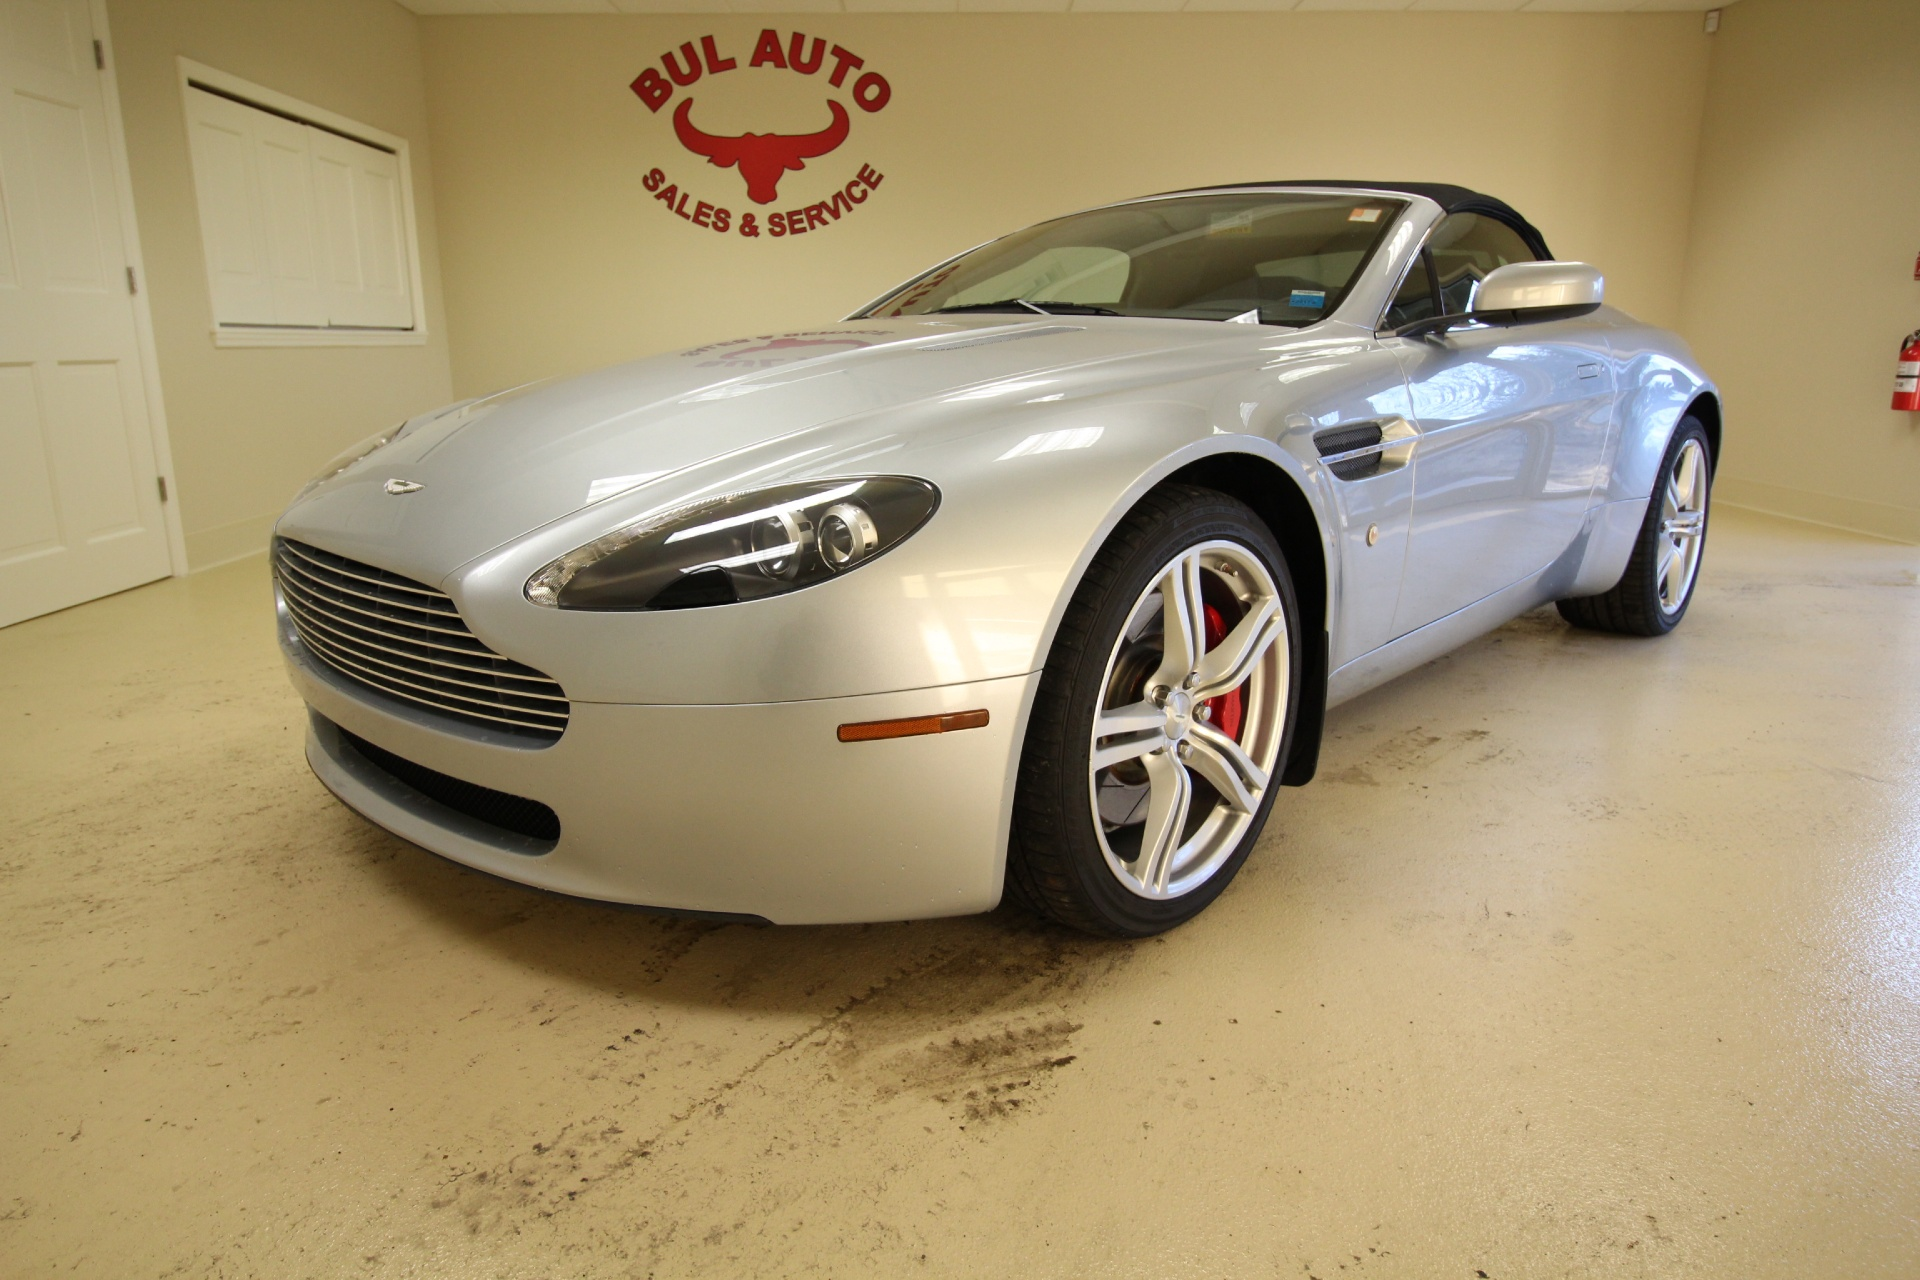 2009 Aston Martin V8 Vantage Roadster Convertible Rare 6 Speed Manual Navigation Red Calipers And More Stock 15066 For Sale Near Albany Ny Ny Aston Martin Dealer For Sale In Albany Ny 15066